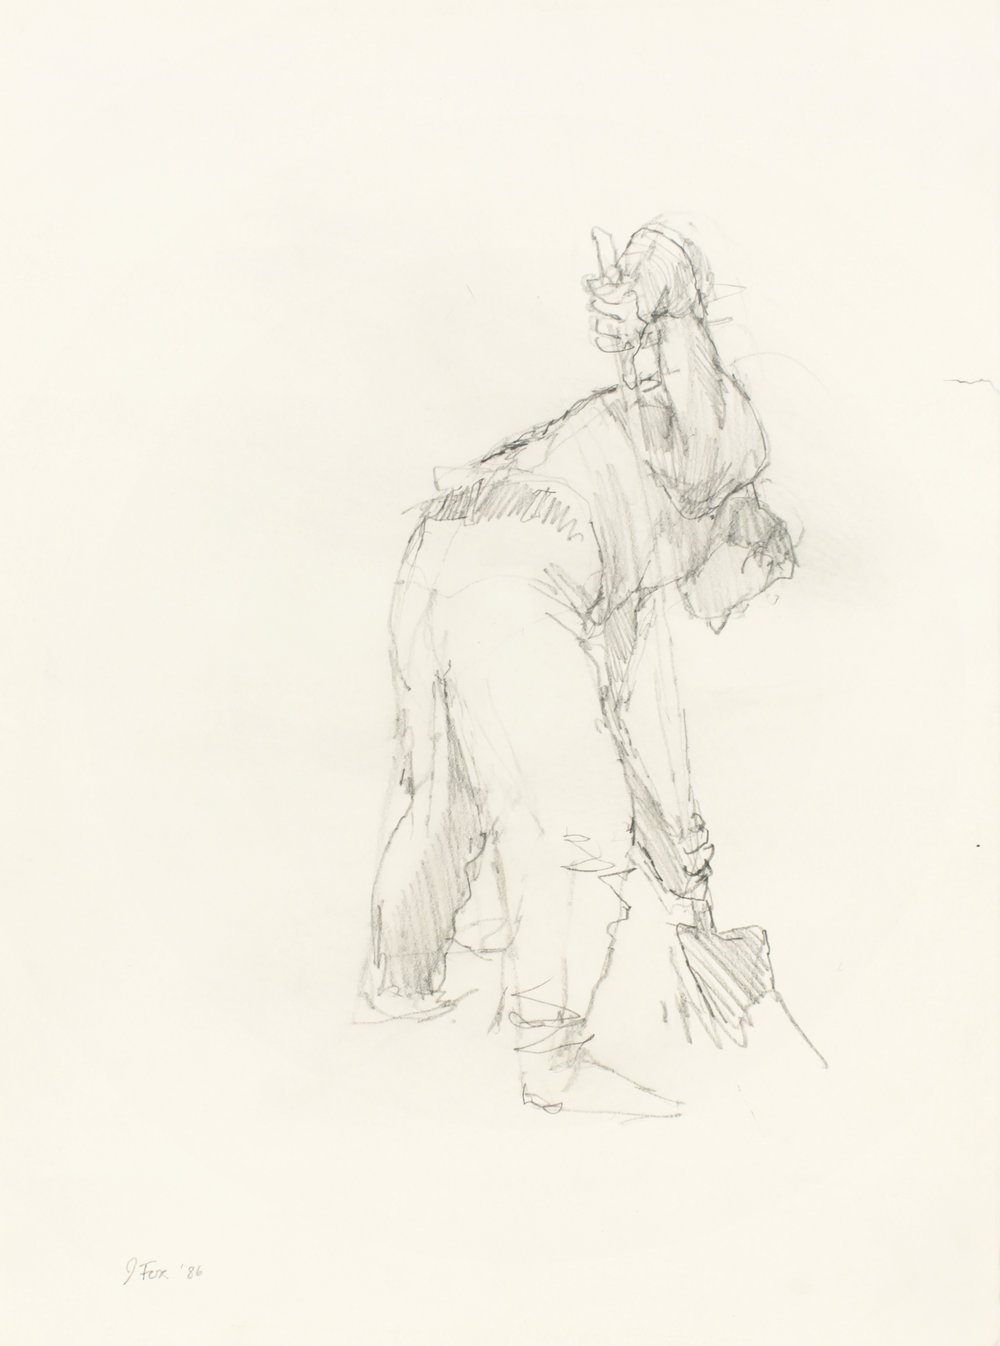 1986_Digger_with_Shovel_pencil_on_paper_15x11in_WPF402.jpg